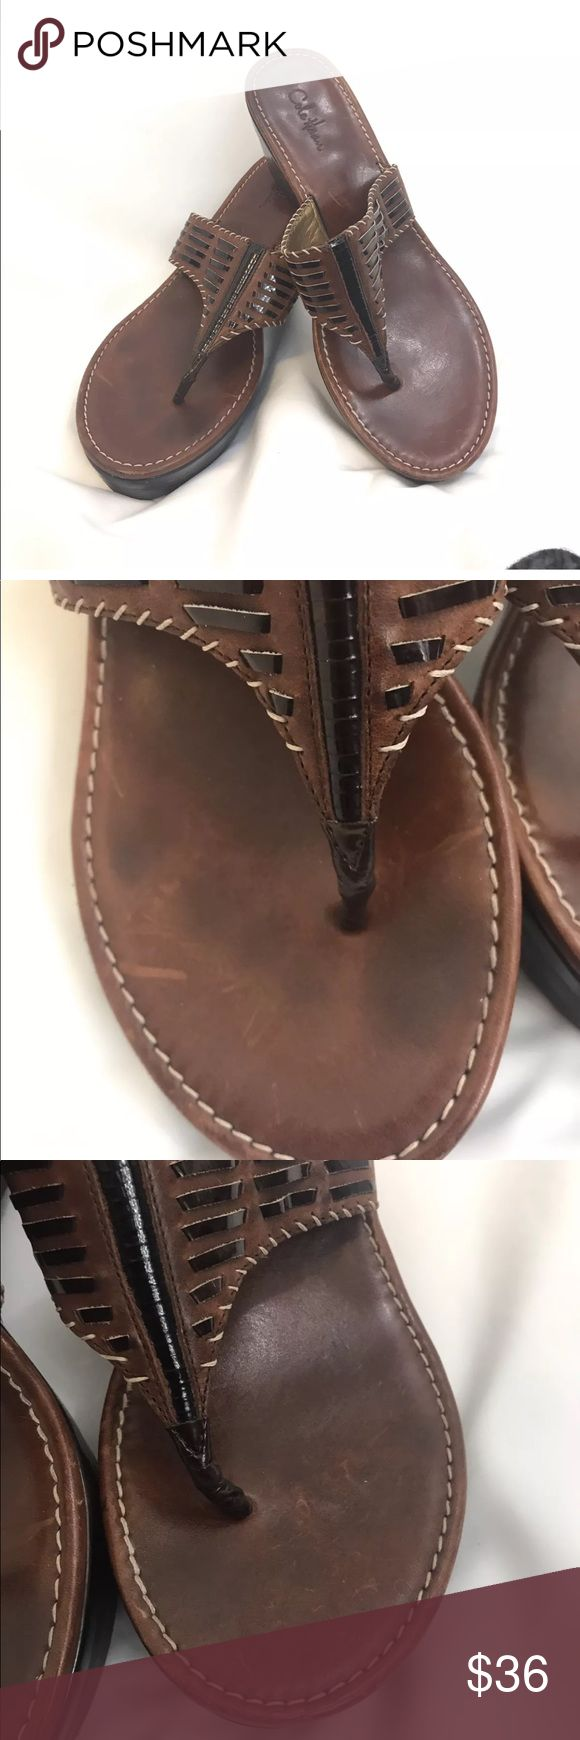 Cole Haan Nike Air Leather Sandals Thongs 7.5 Brown Leather Slip On Wedge Thongs With Nike Air Rubber Soles Size 7.5B Cole Haan Shoes Sandals